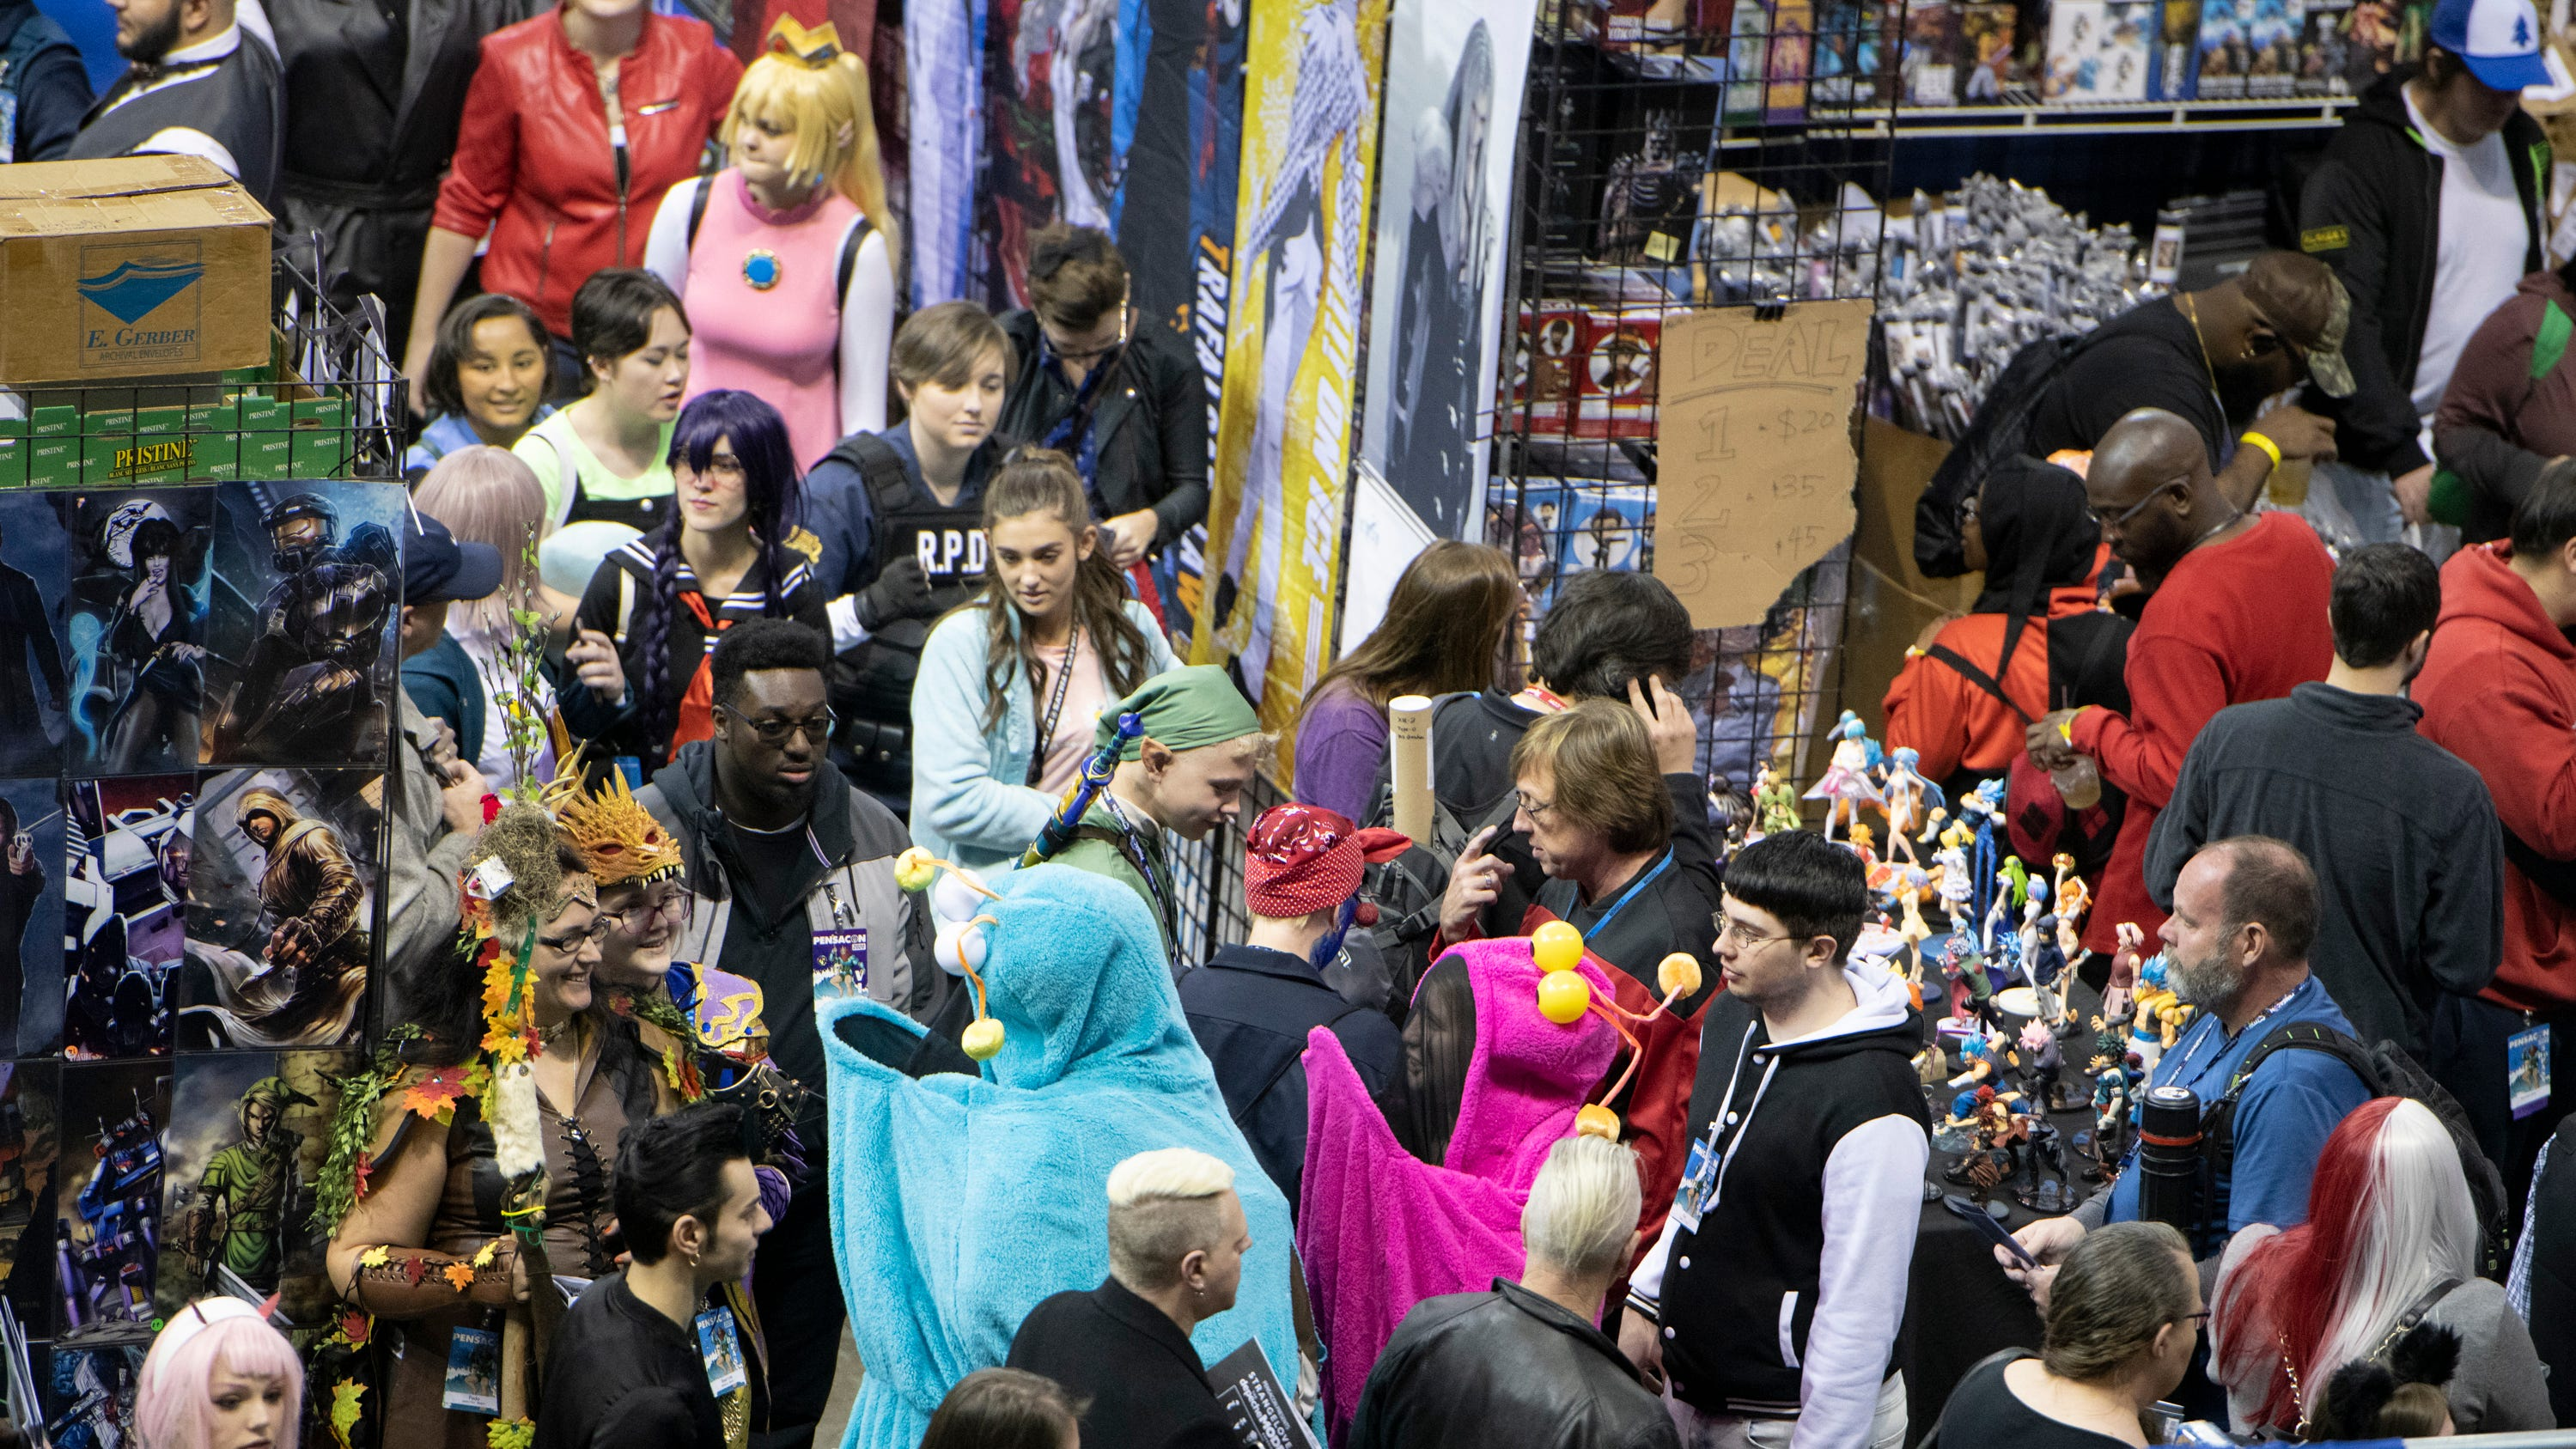 Pensacon rescheduled for May, face masks required